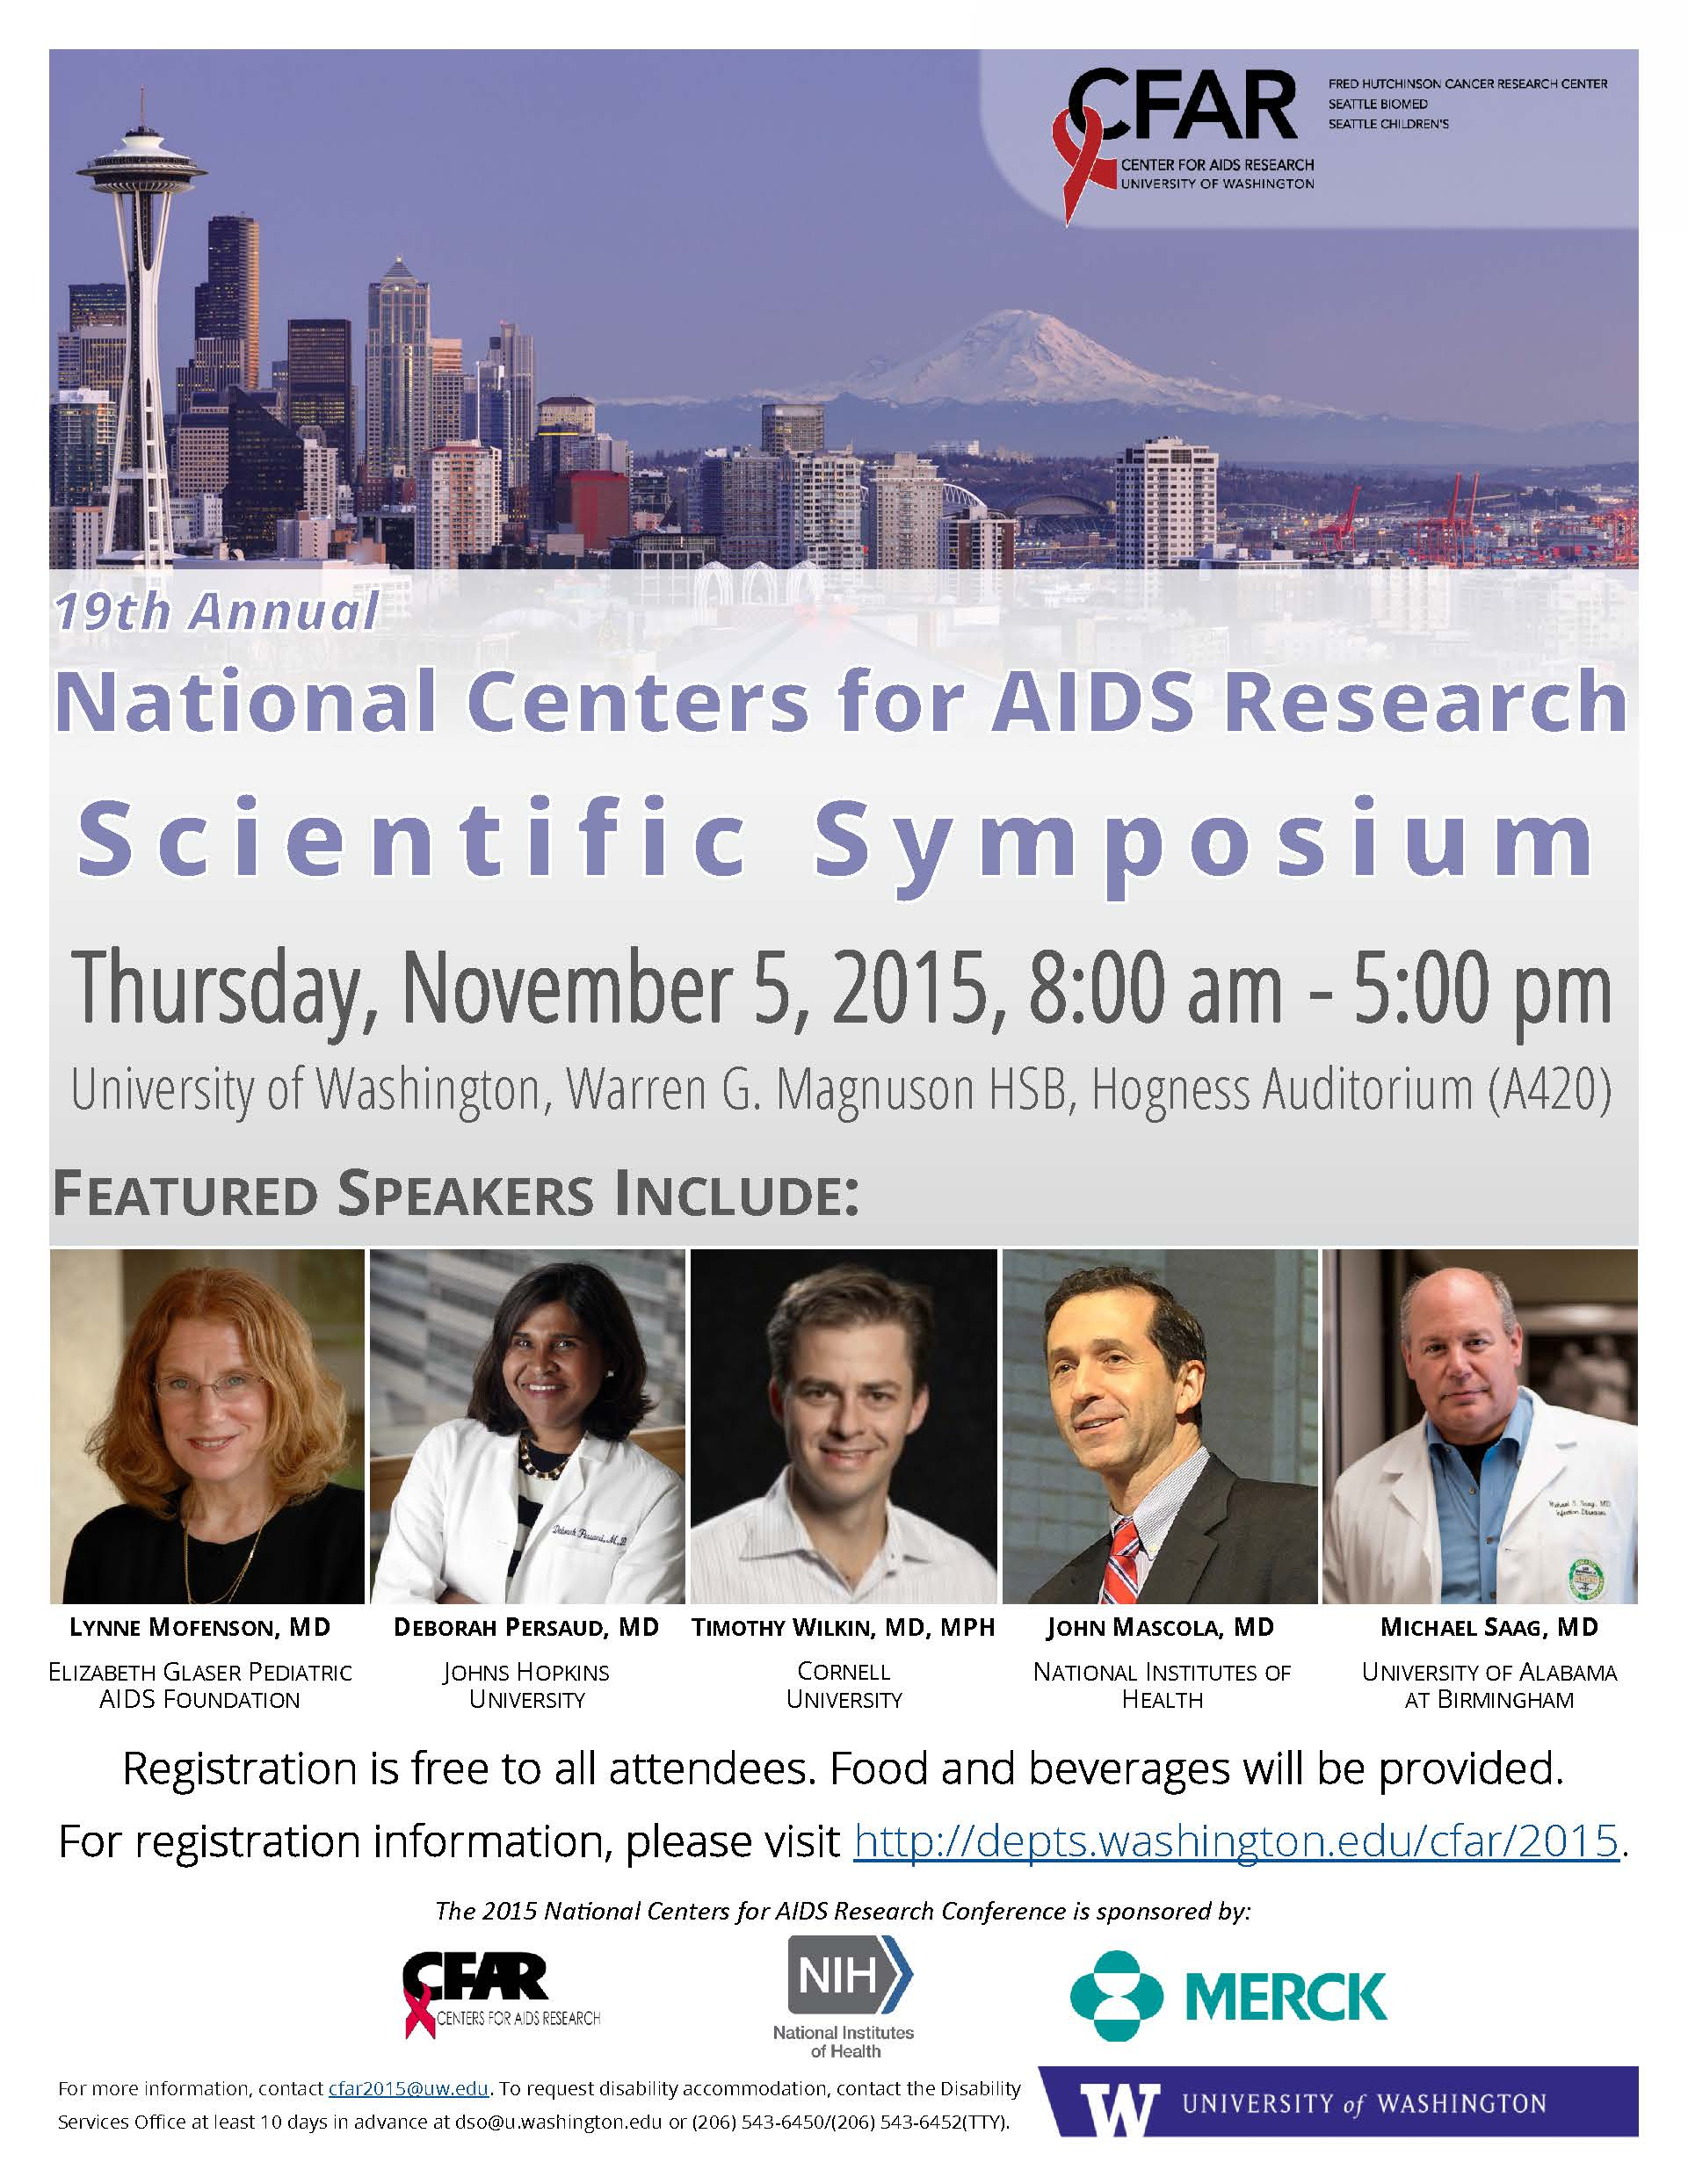 Invitation to Attend the 2015 CFAR Scientific Symposium Undergrad